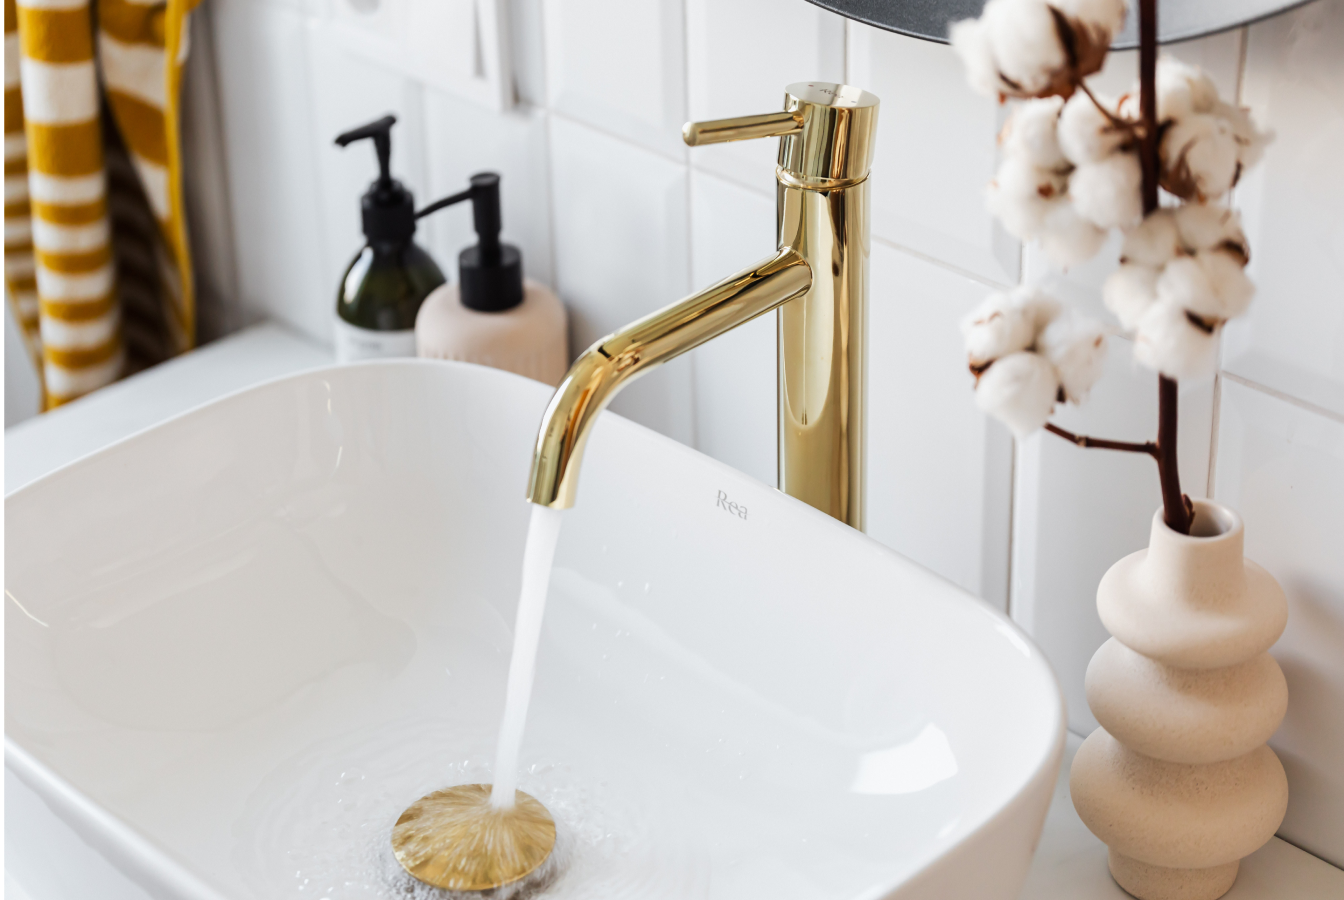 Gold faucet running into white porceline sink